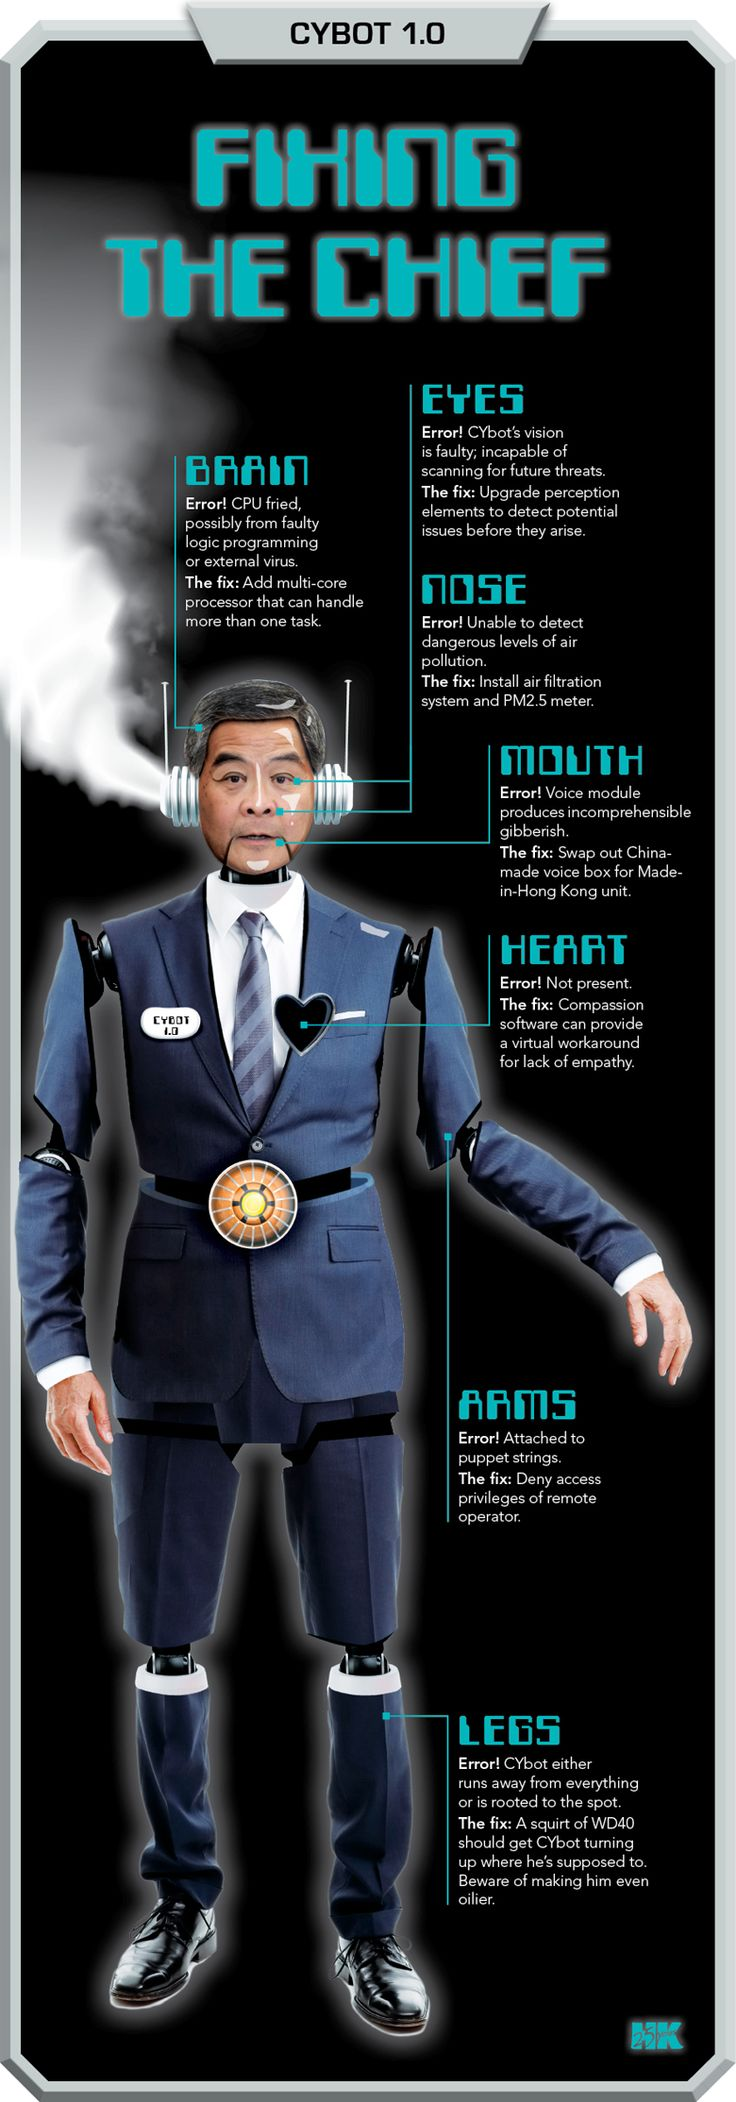 Pimp My CE: How Hong Kong's Chief Executive CY Leung Can Win Our Hearts | HK Magazine